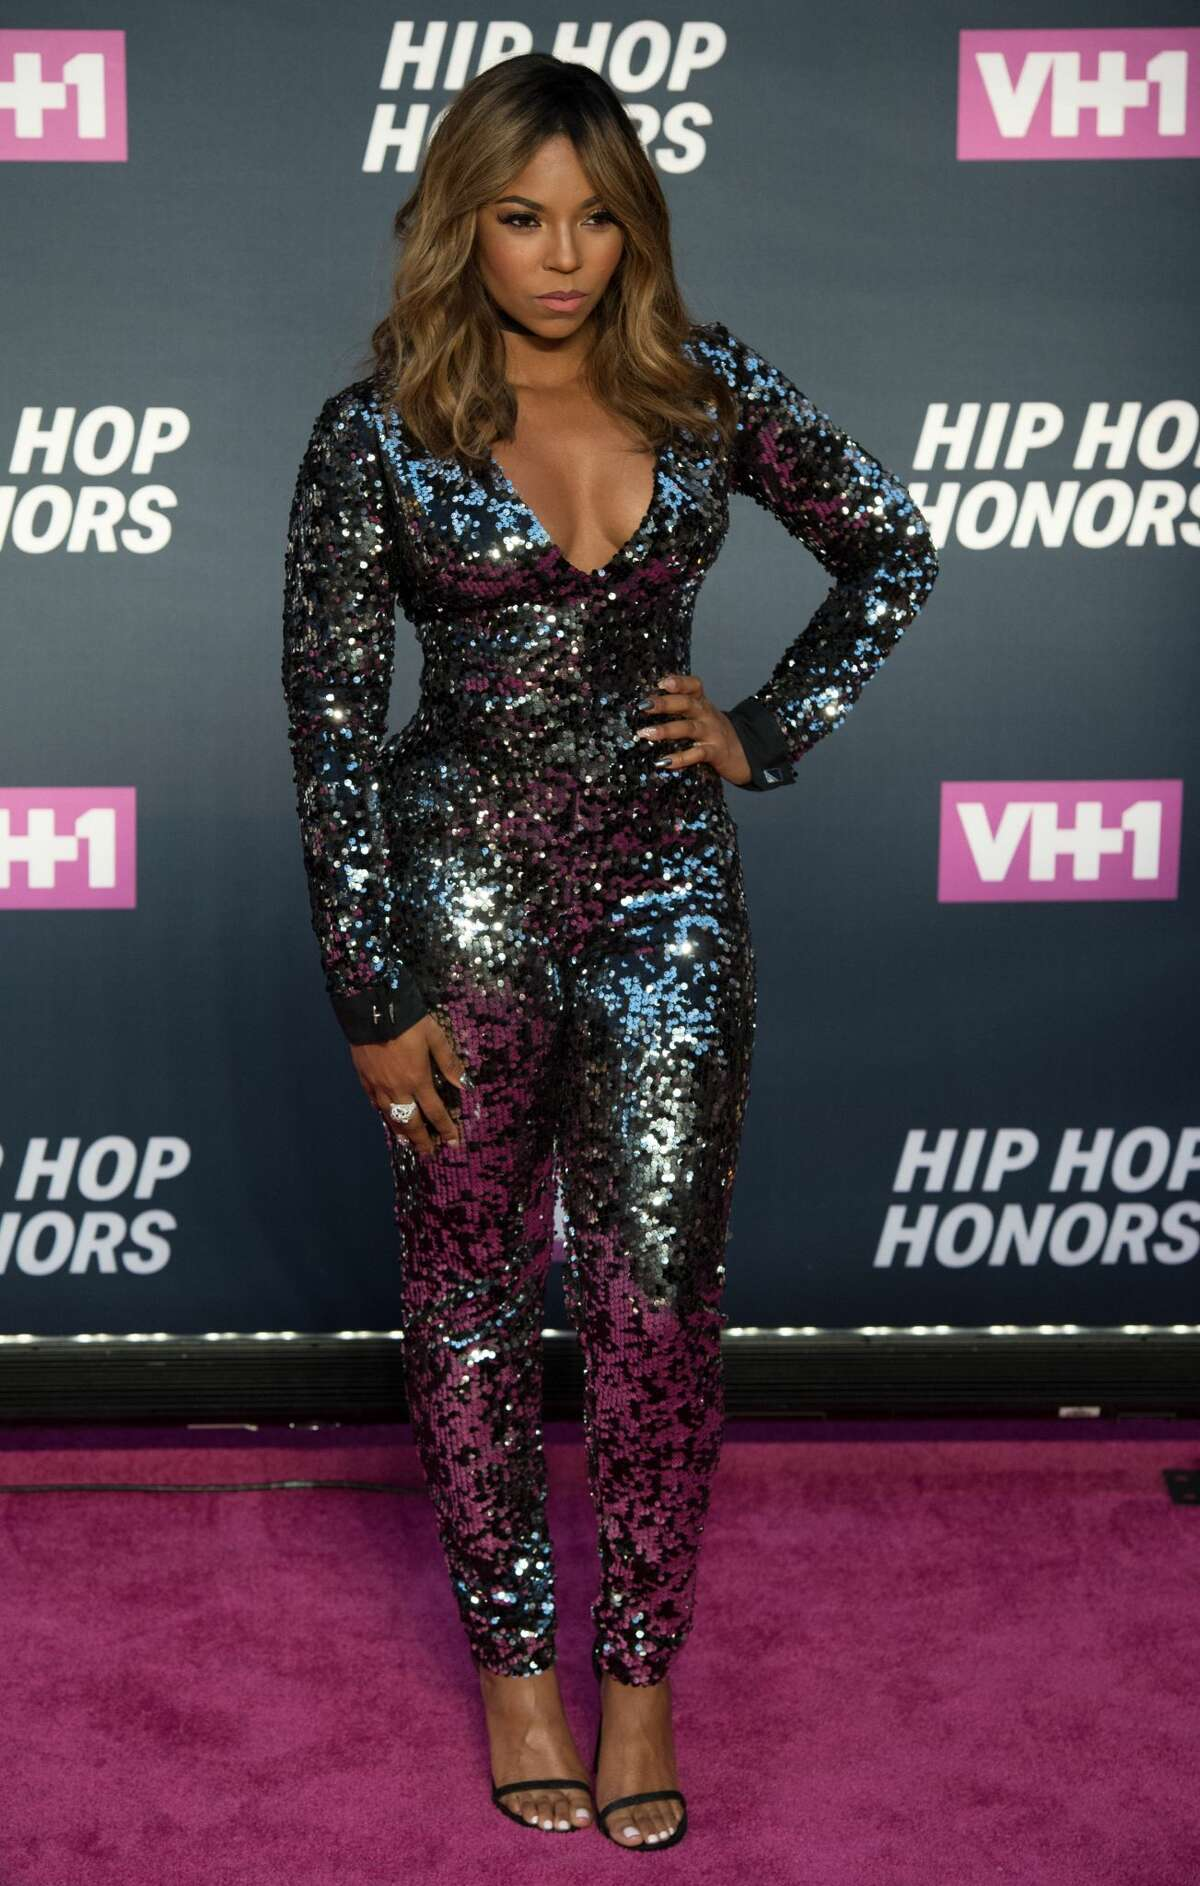 Ashanti now: We really need to see Ashanti more if she's going to wear amazing glitter catsuits all the time.